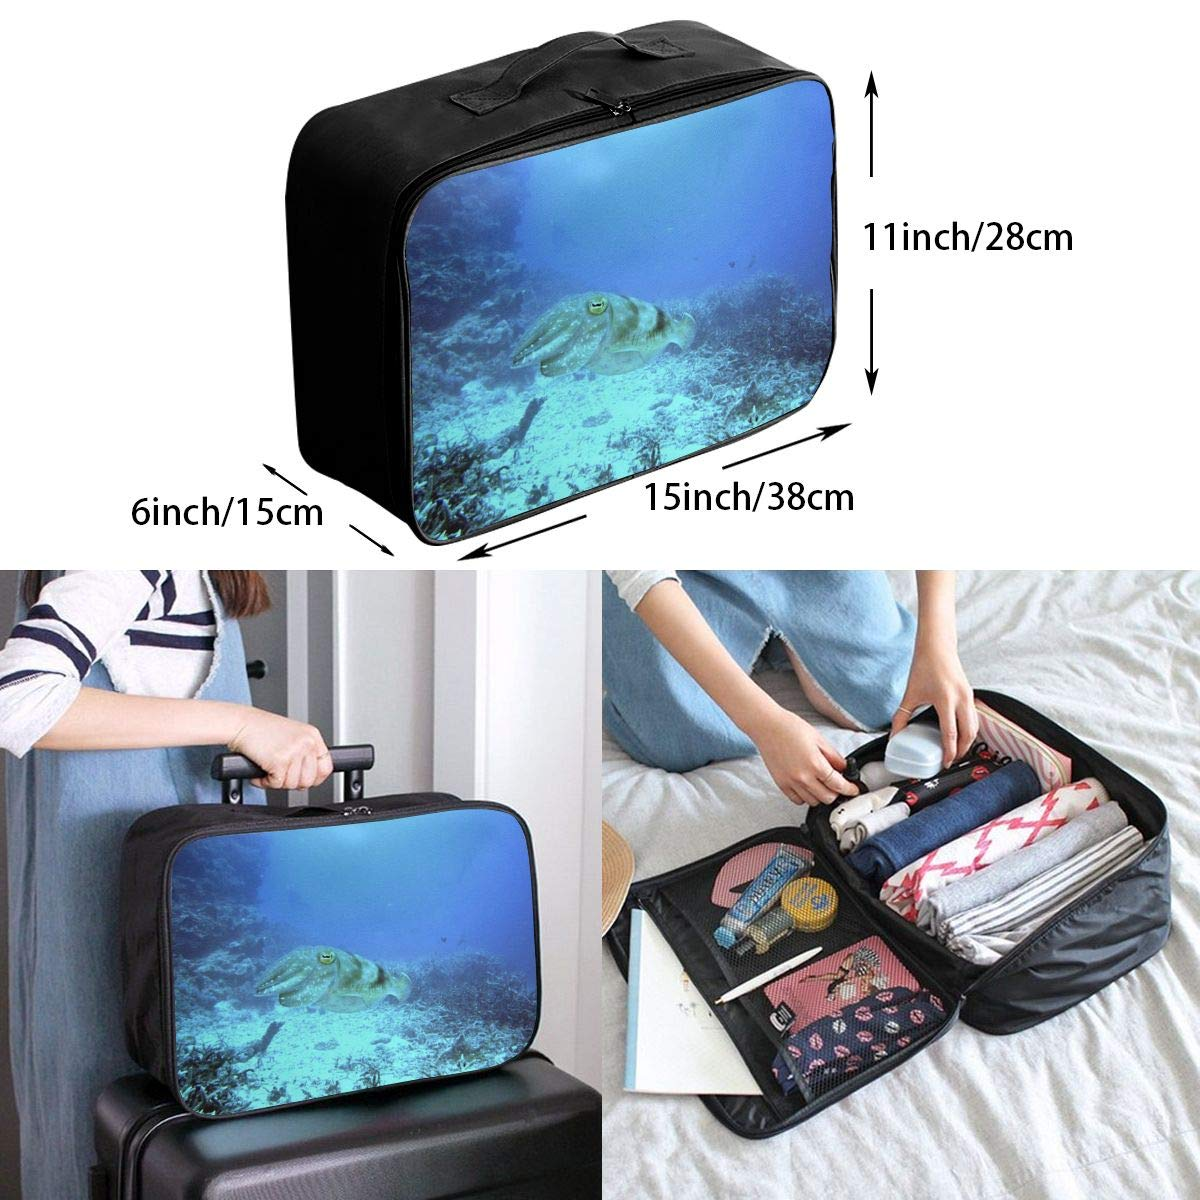 Trout Reef Sea Creature Travel Lightweight Waterproof Foldable Storage Carry Luggage Large Capacity Portable Luggage Bag Duffel Bag